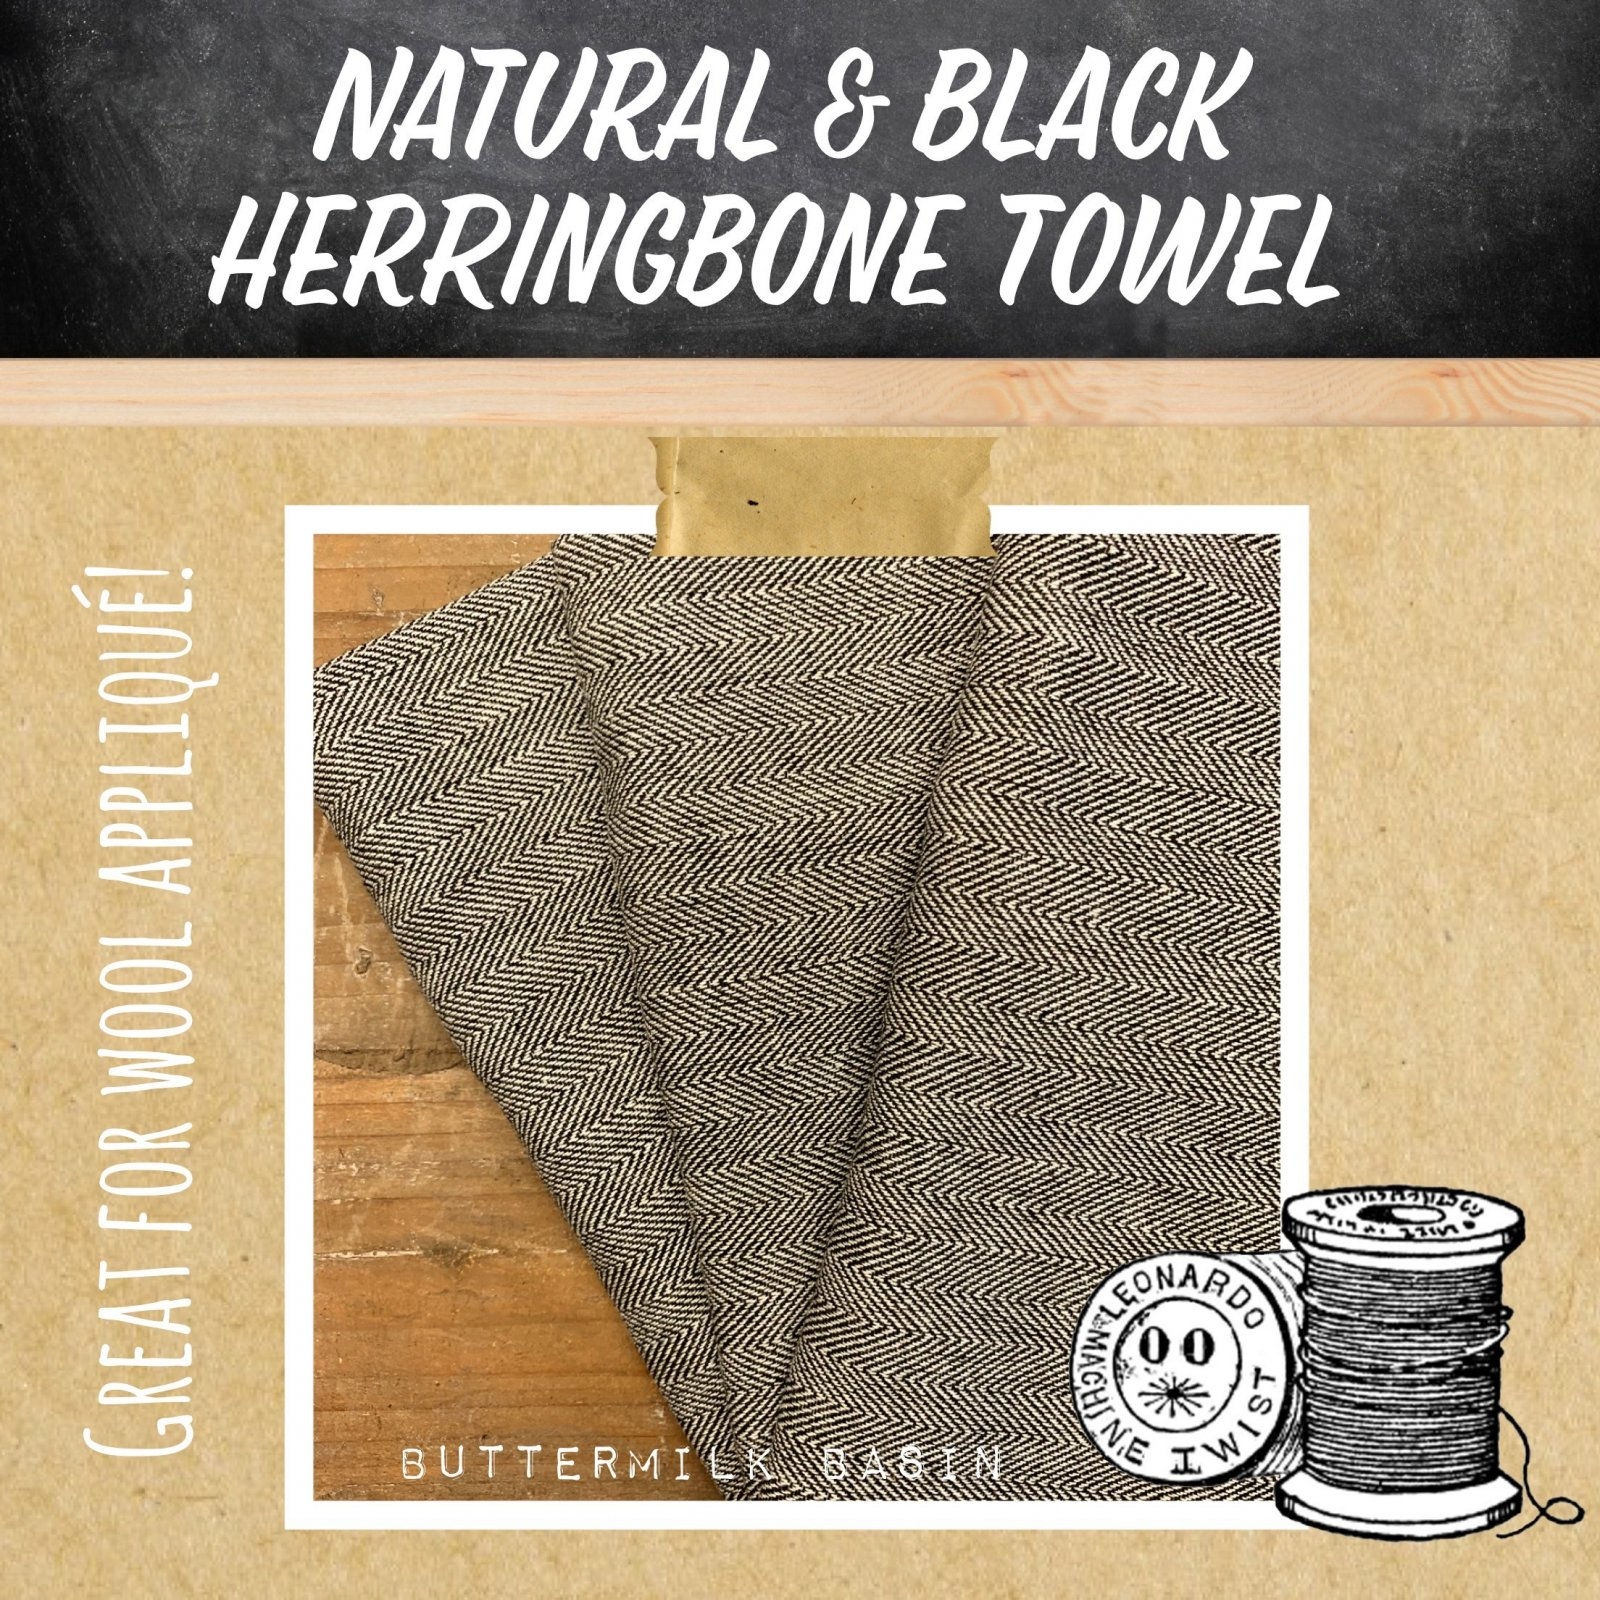 Natural & Black Herringbone Towel